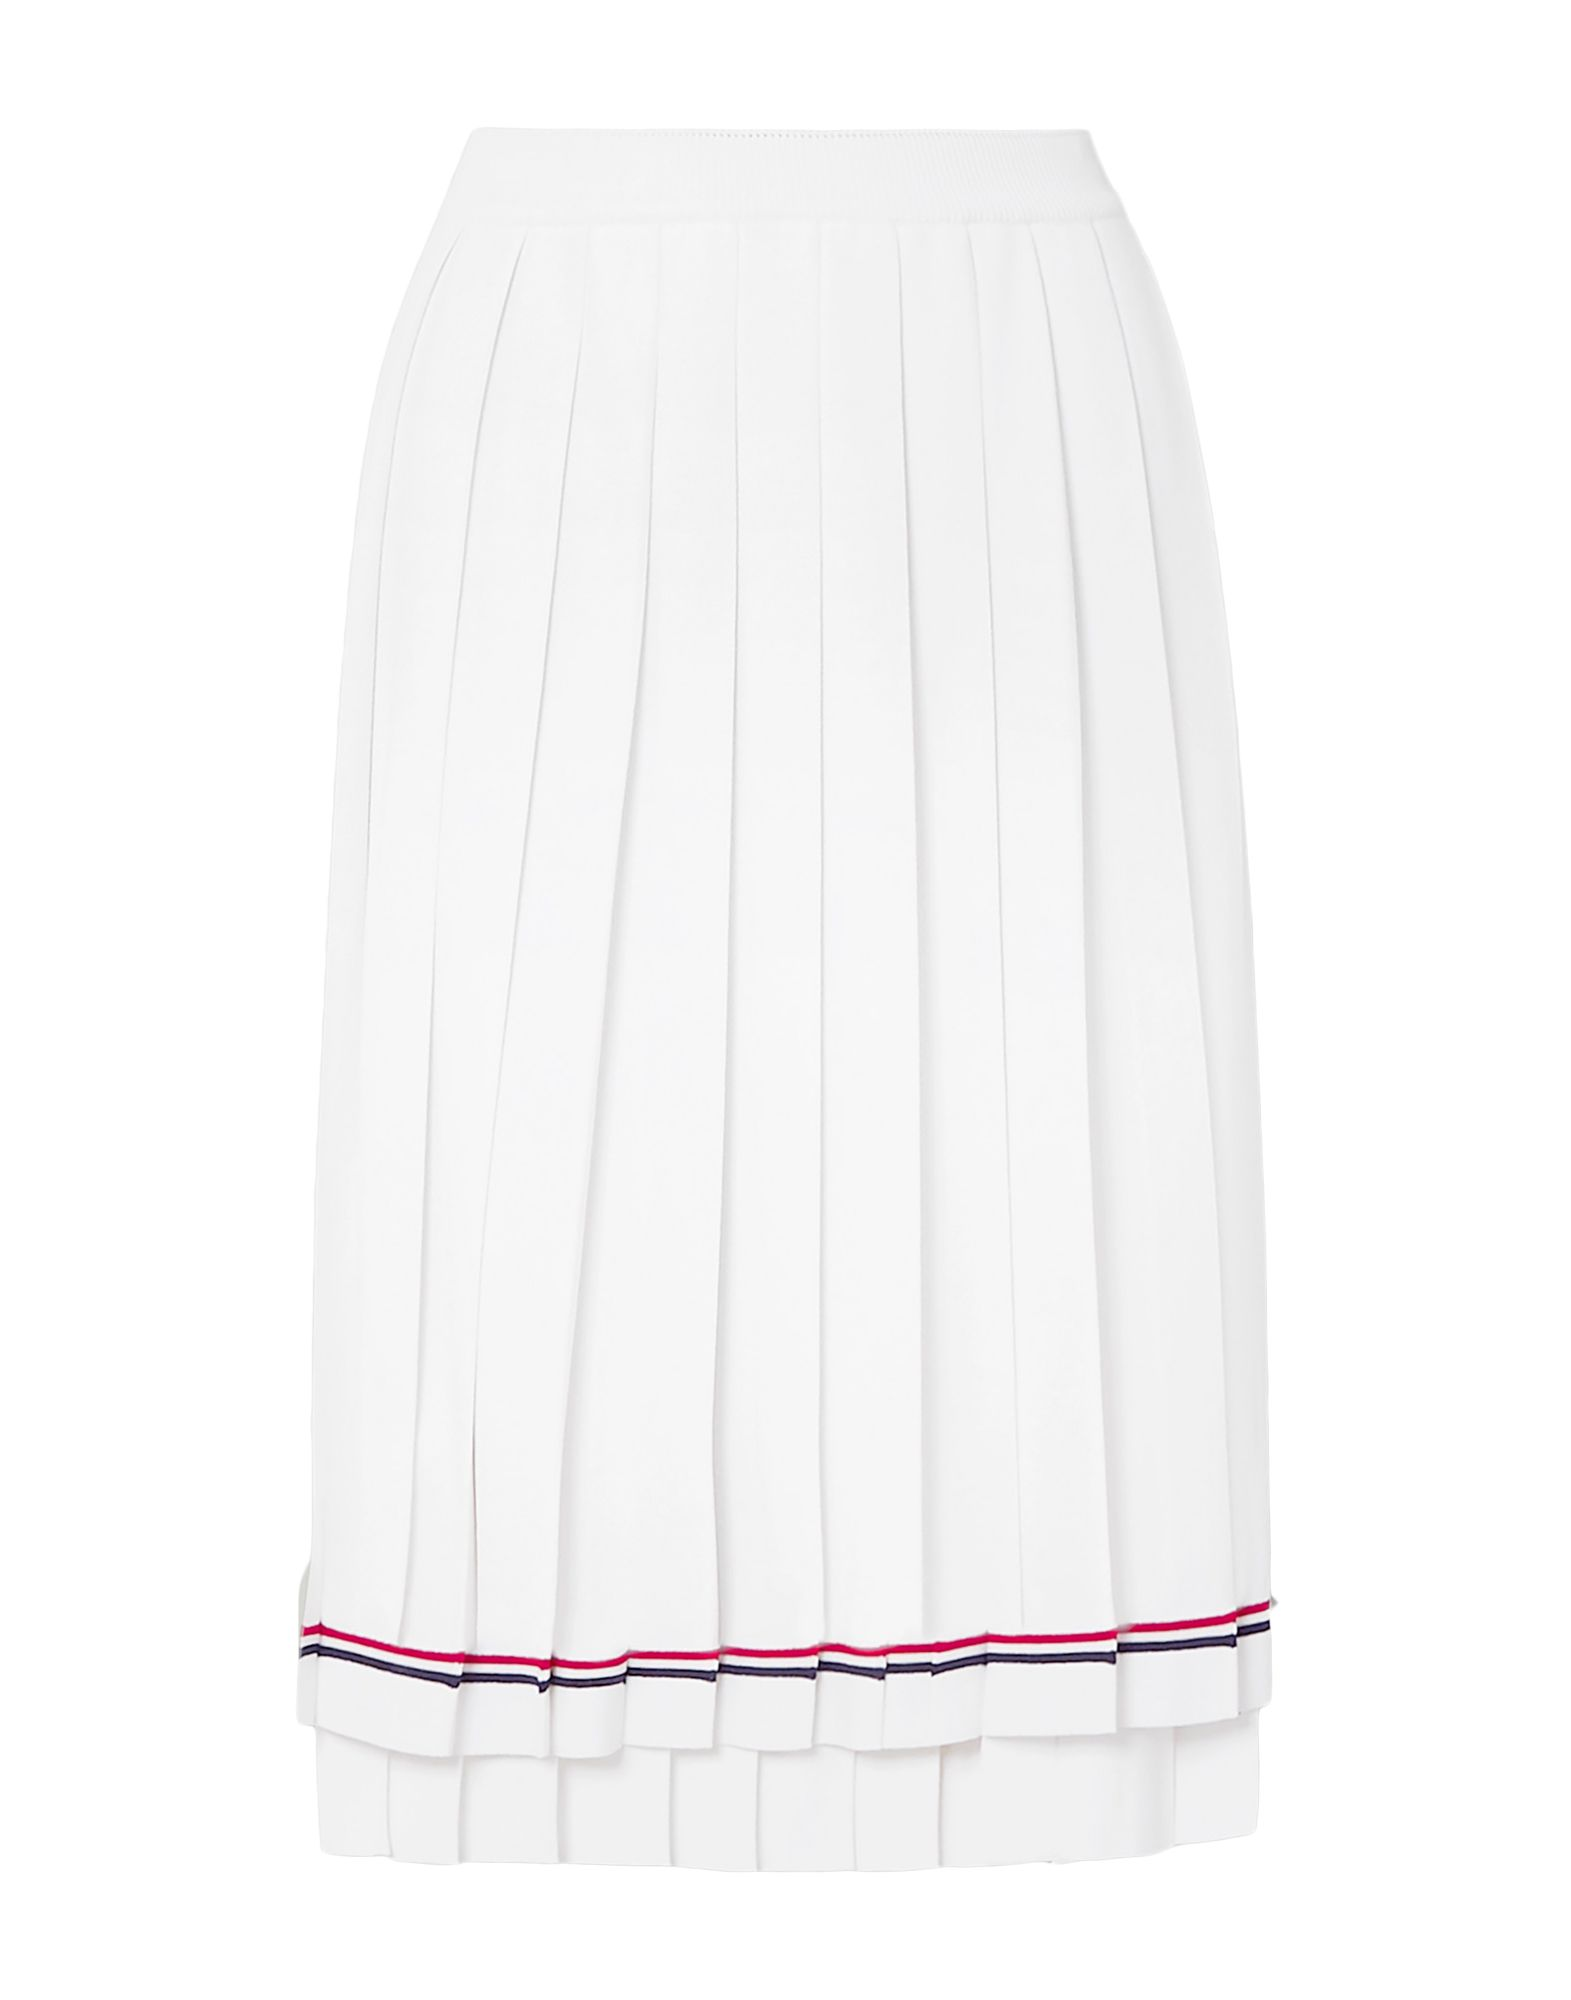 THOM BROWNE Knee length skirts. knitted, no appliqués, solid color, no pockets, no fastening, unlined. 59% Viscose, 41% Polyester